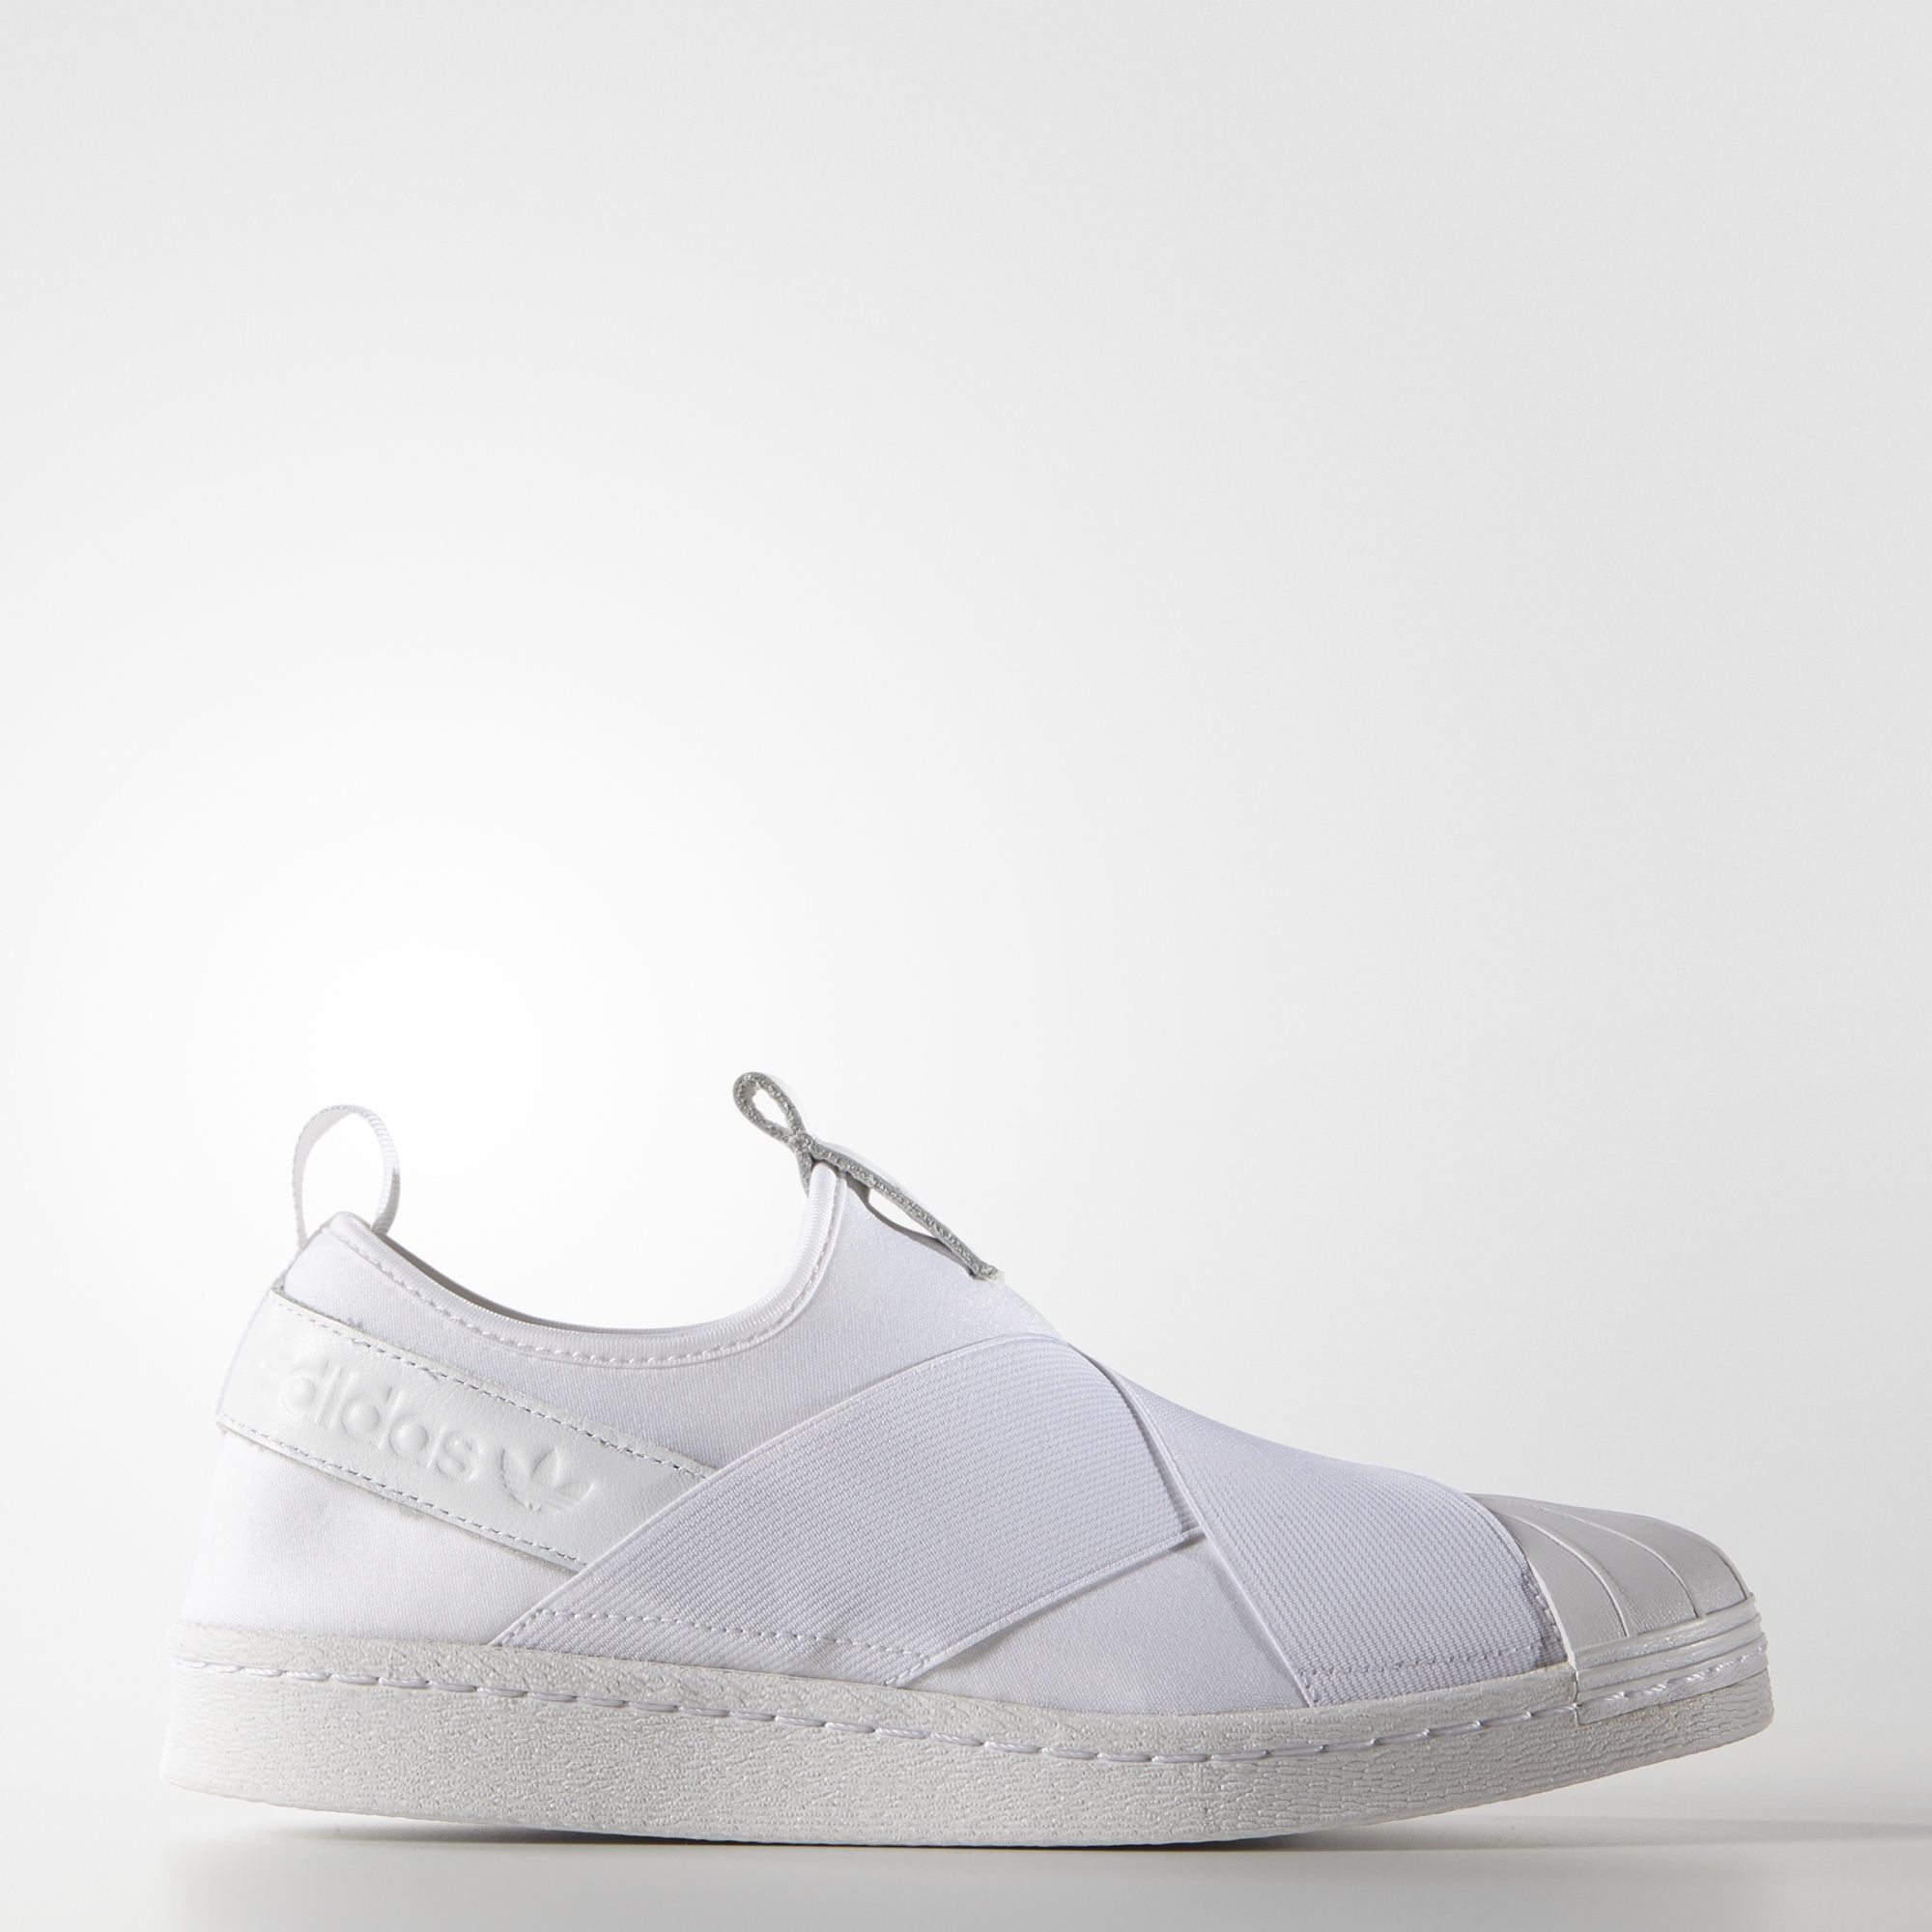 adidas superstar slip on sneakers leather uppers for women